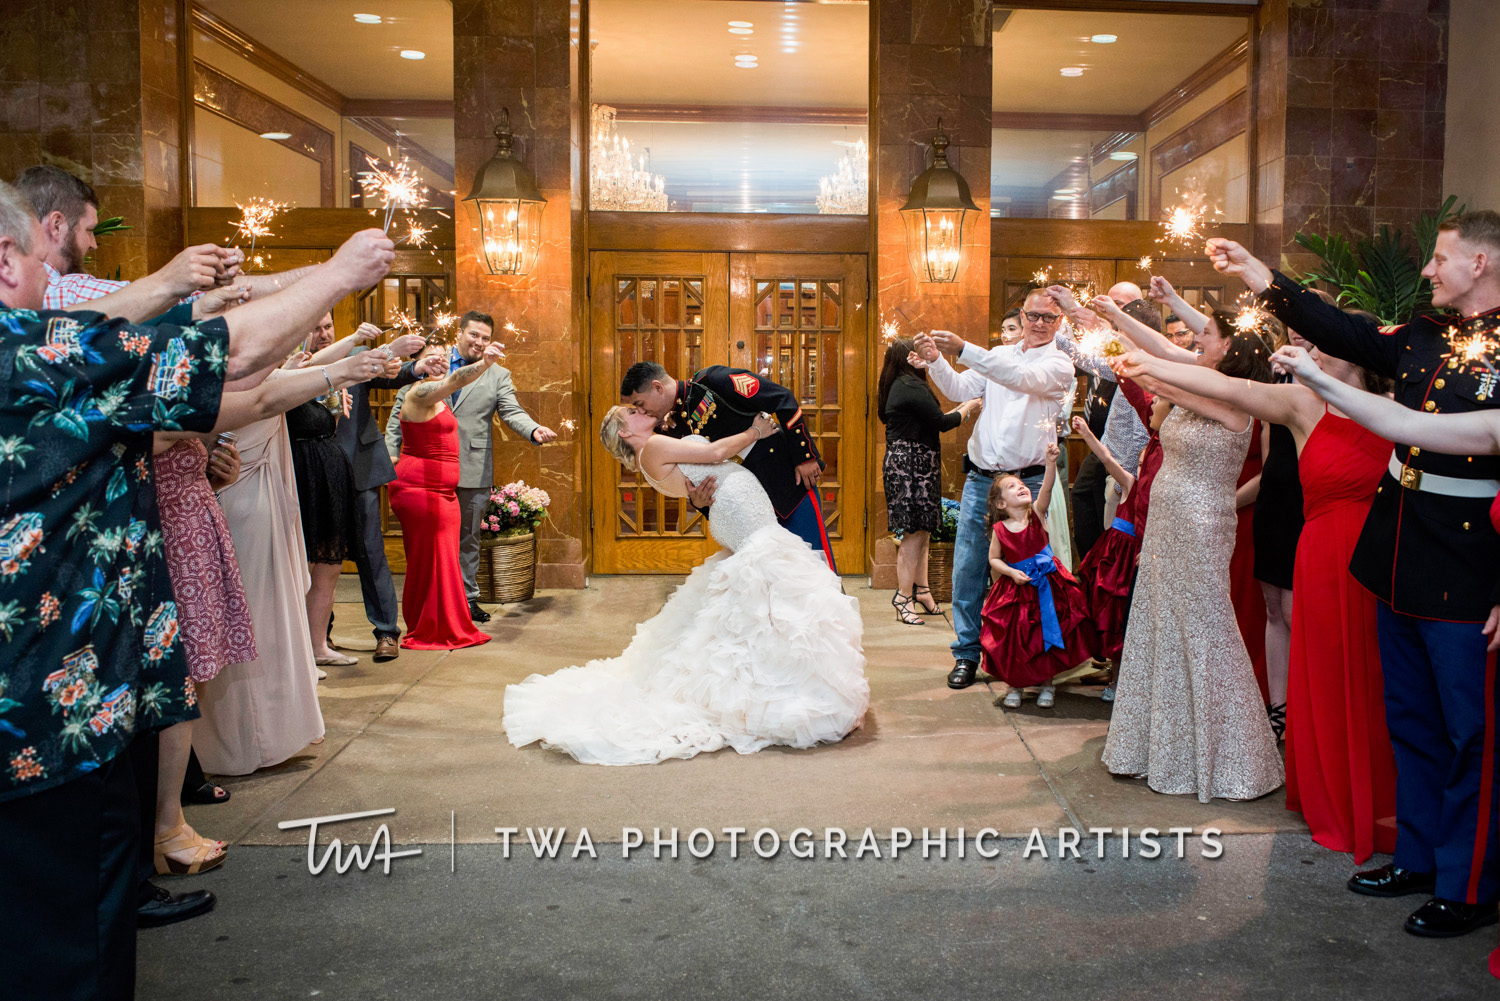 Chicago Wedding Photographers | Weddings at Drury Lane | TWA Photographic Artists